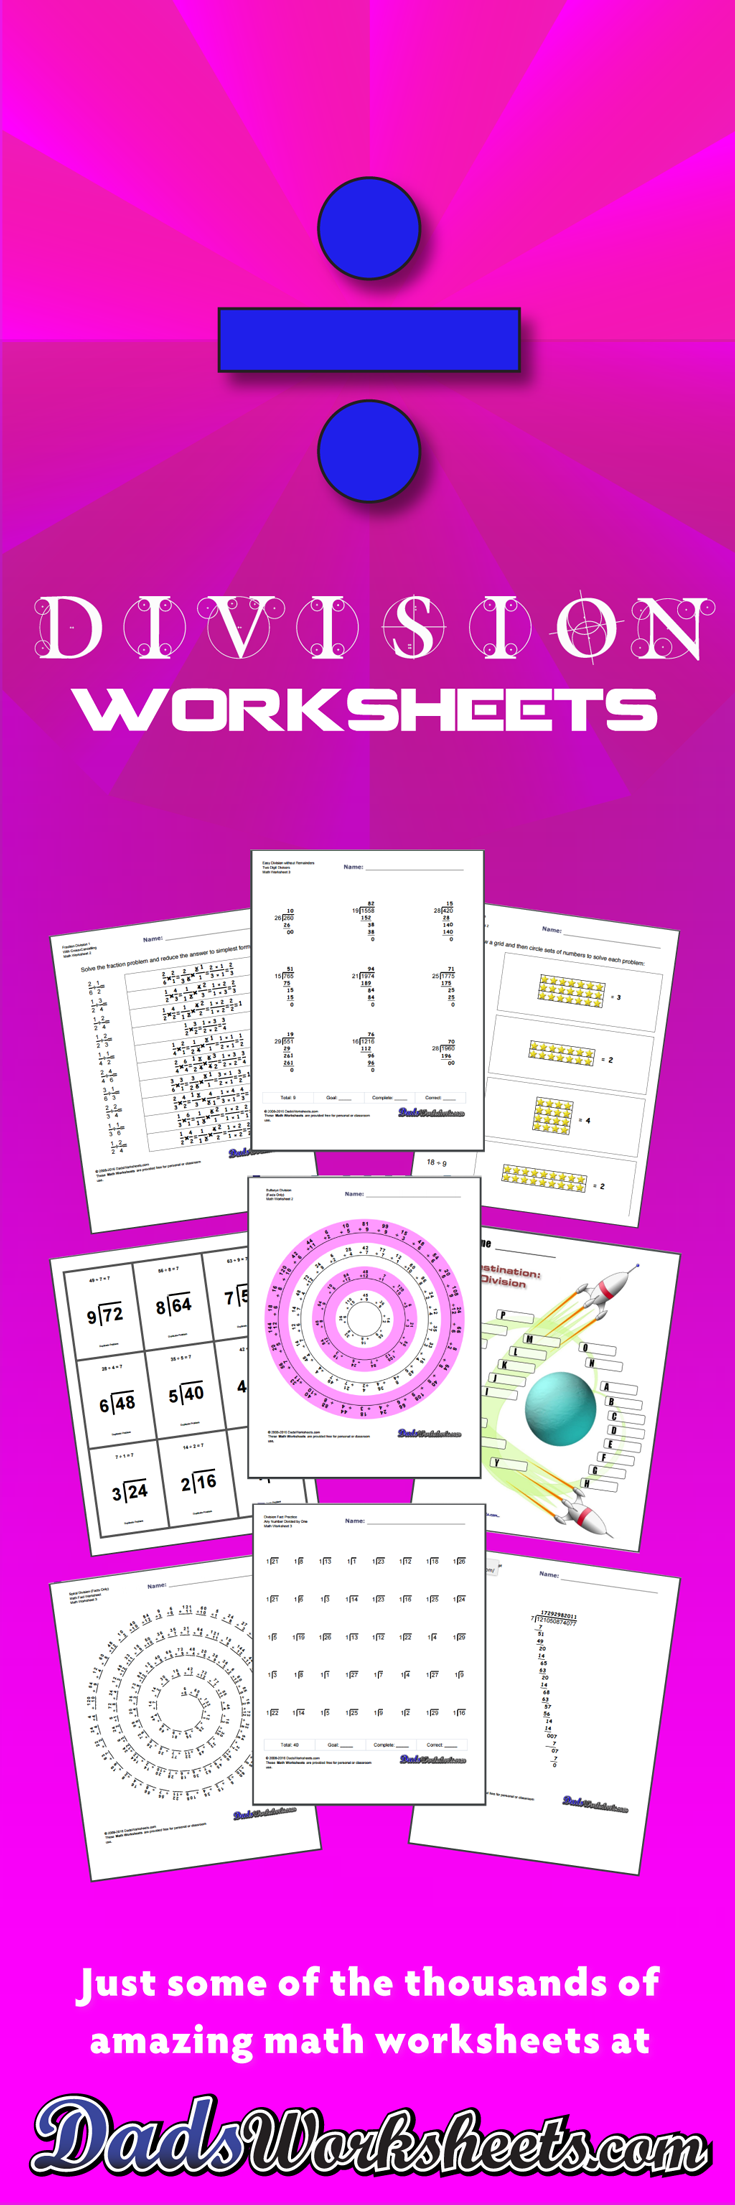 644 division worksheets for you to print right now